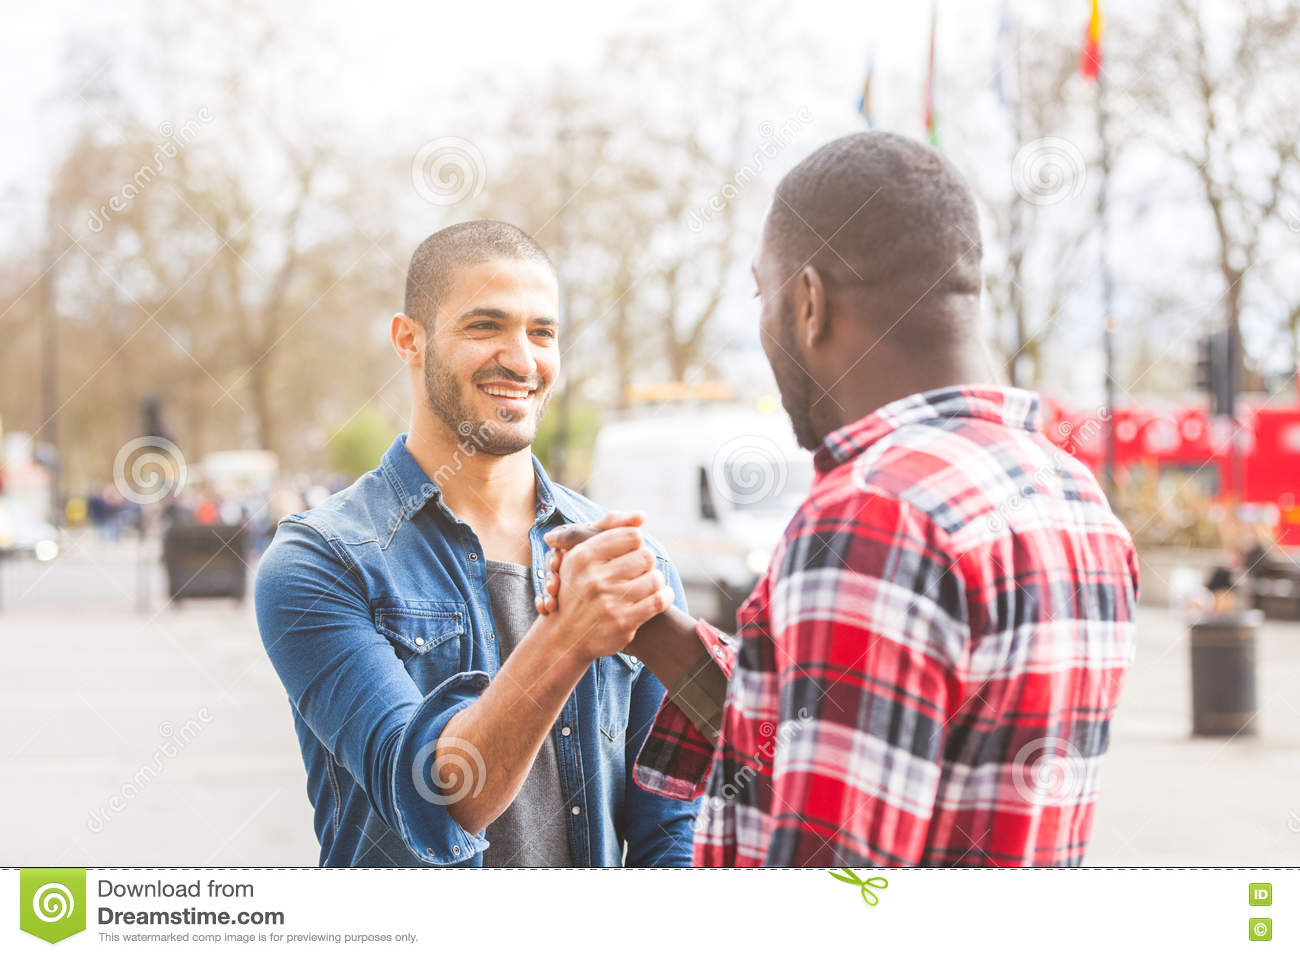 middle eastern single men in friendship Meet middle eastern men meet interesting middle eastern men worldwide on lovehabibi - the most popular place on the web for finding a handsome husband or boyfriend from middle east signup free, create a profile for yourself, browse photos and get in contact with the man of your dreams today - wherever he may be.